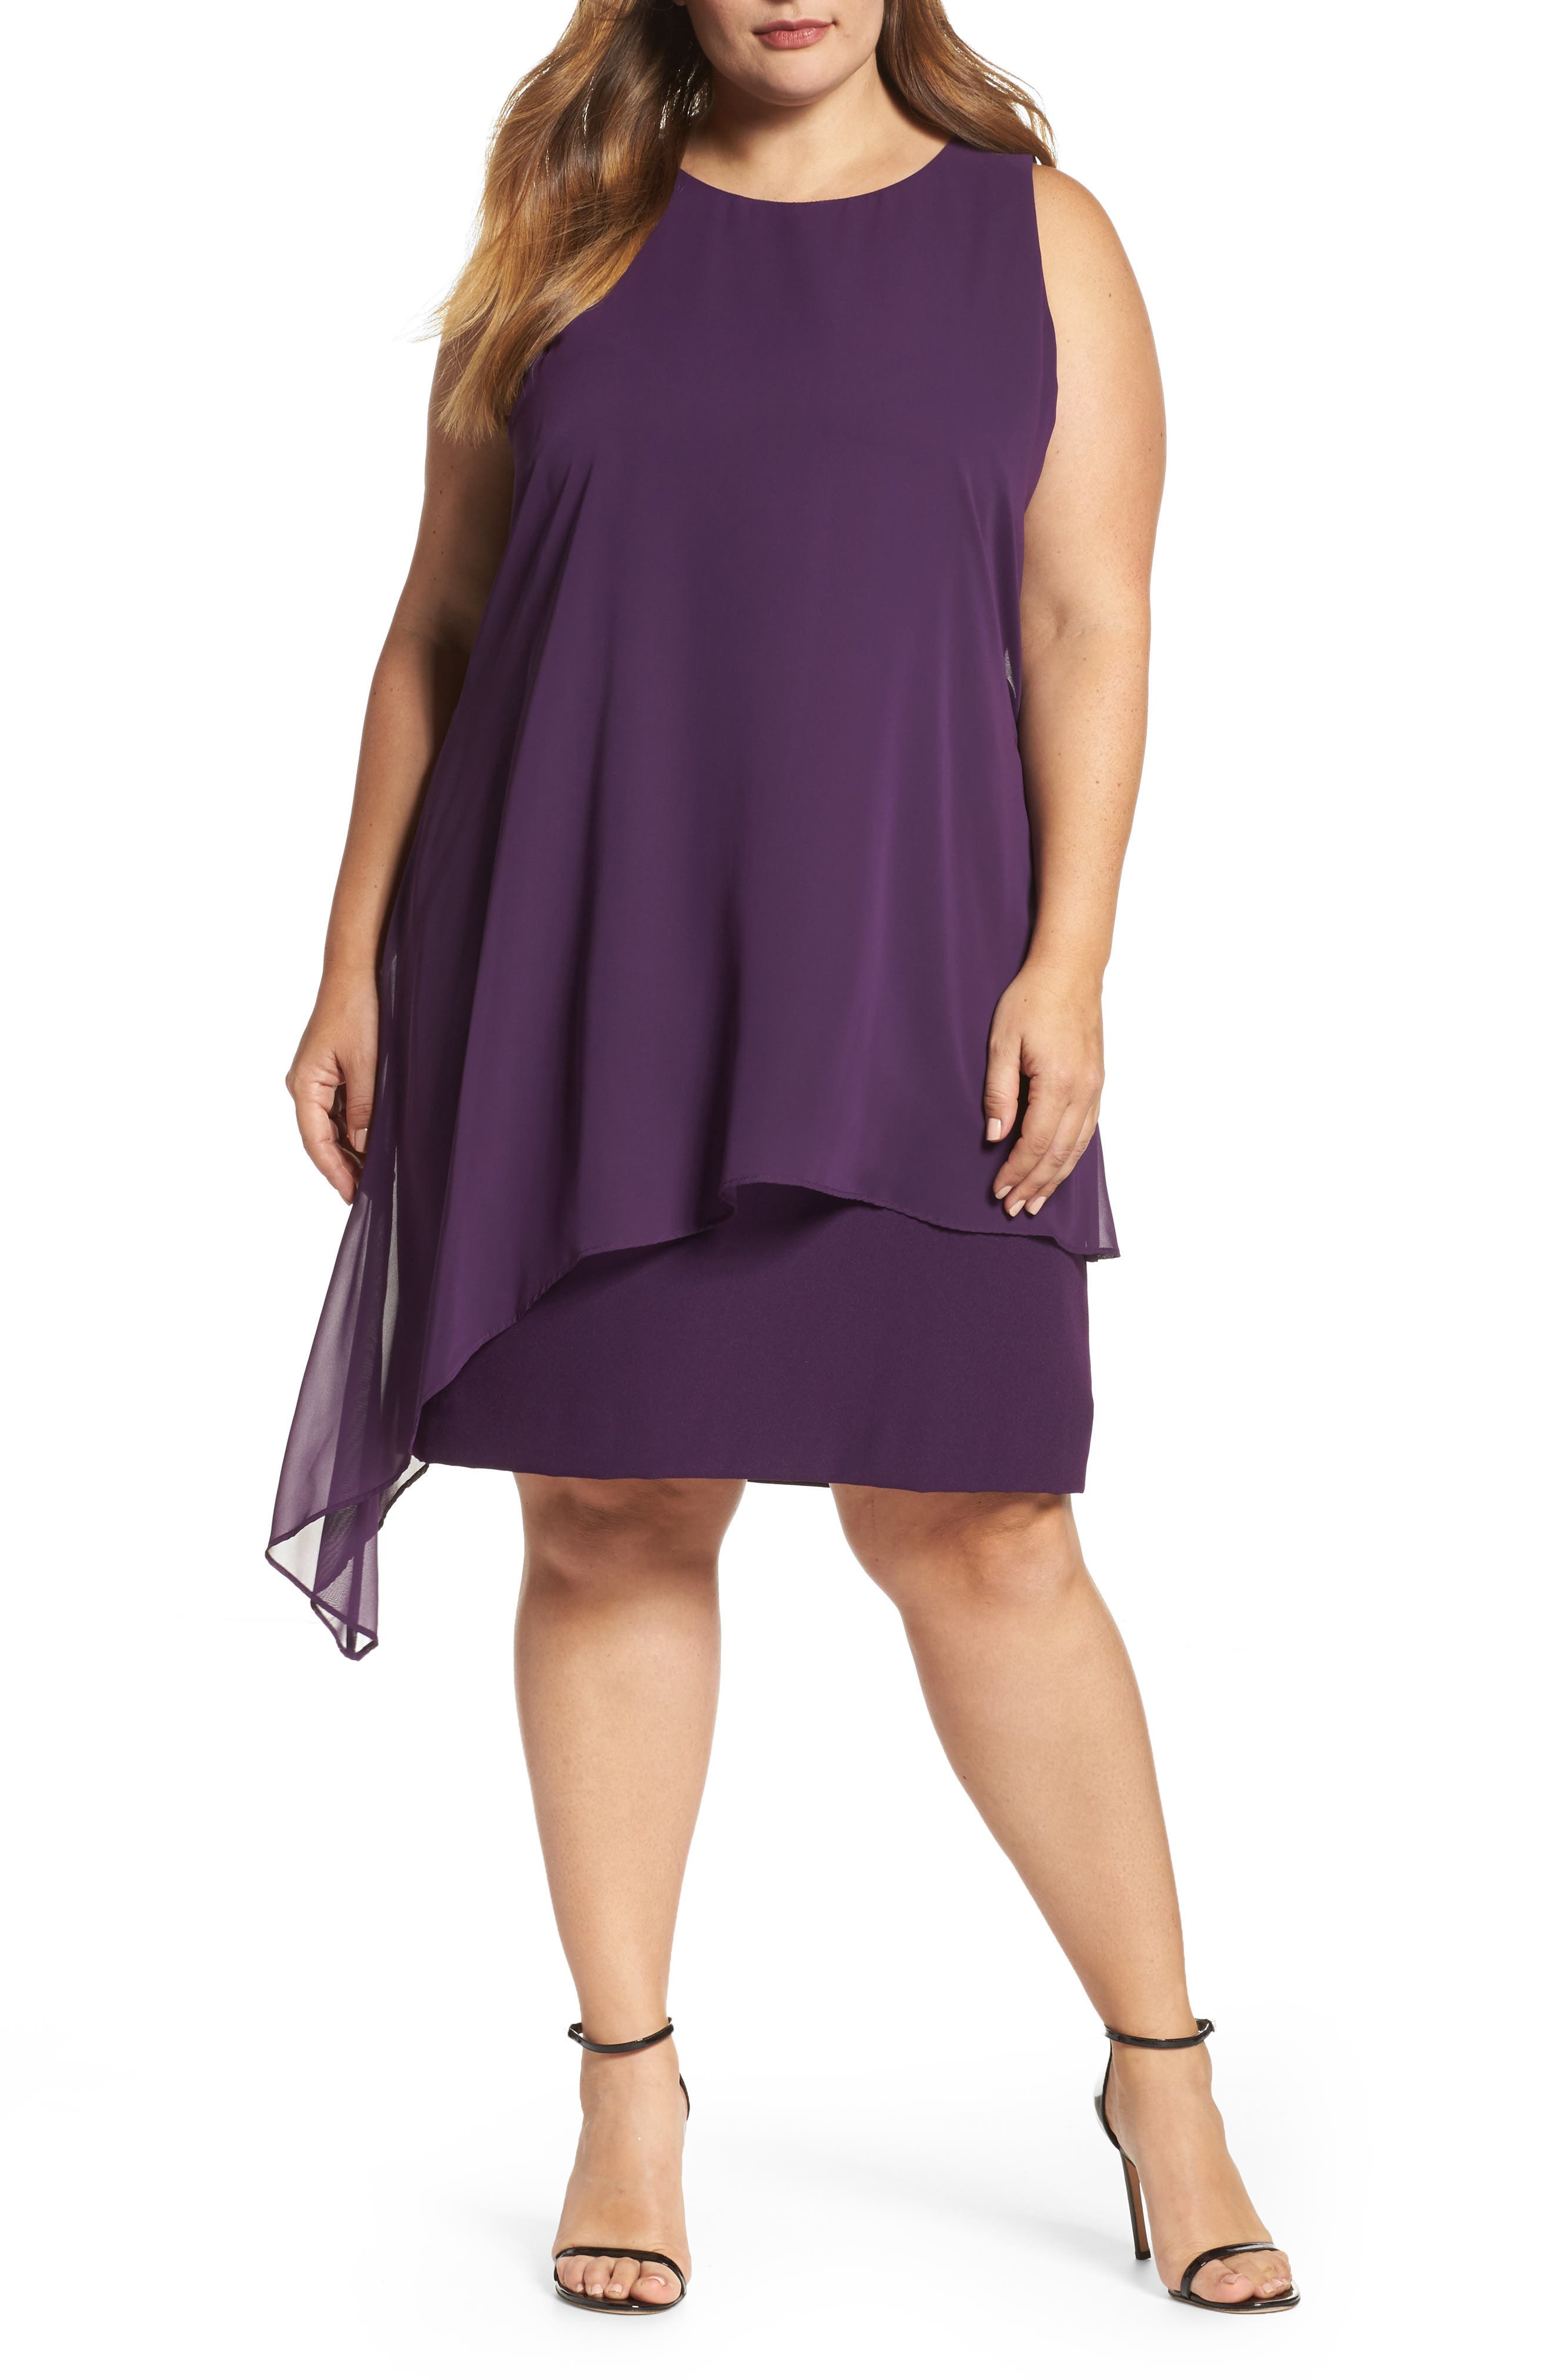 Alternate Image 1 Selected - Tahari Chiffon Overlay Shift Dress (Plus Size)